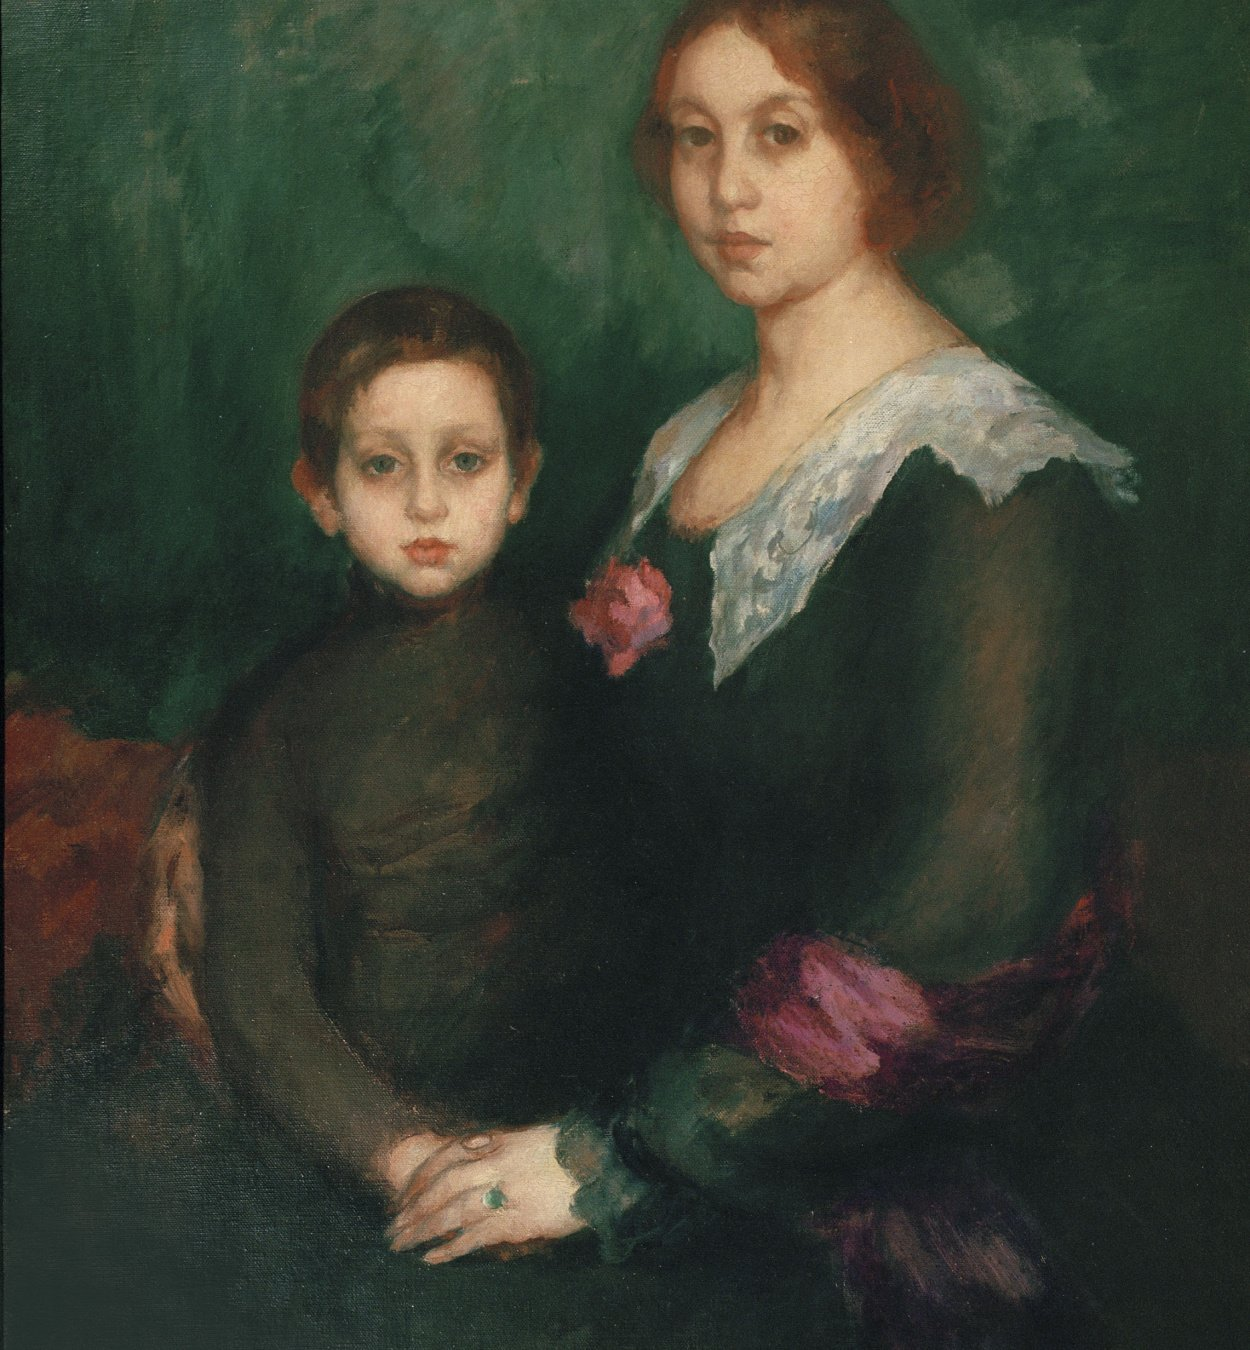 Ricard Canals - Portrait of the Wife and the Son of the Artist - Circa 1912